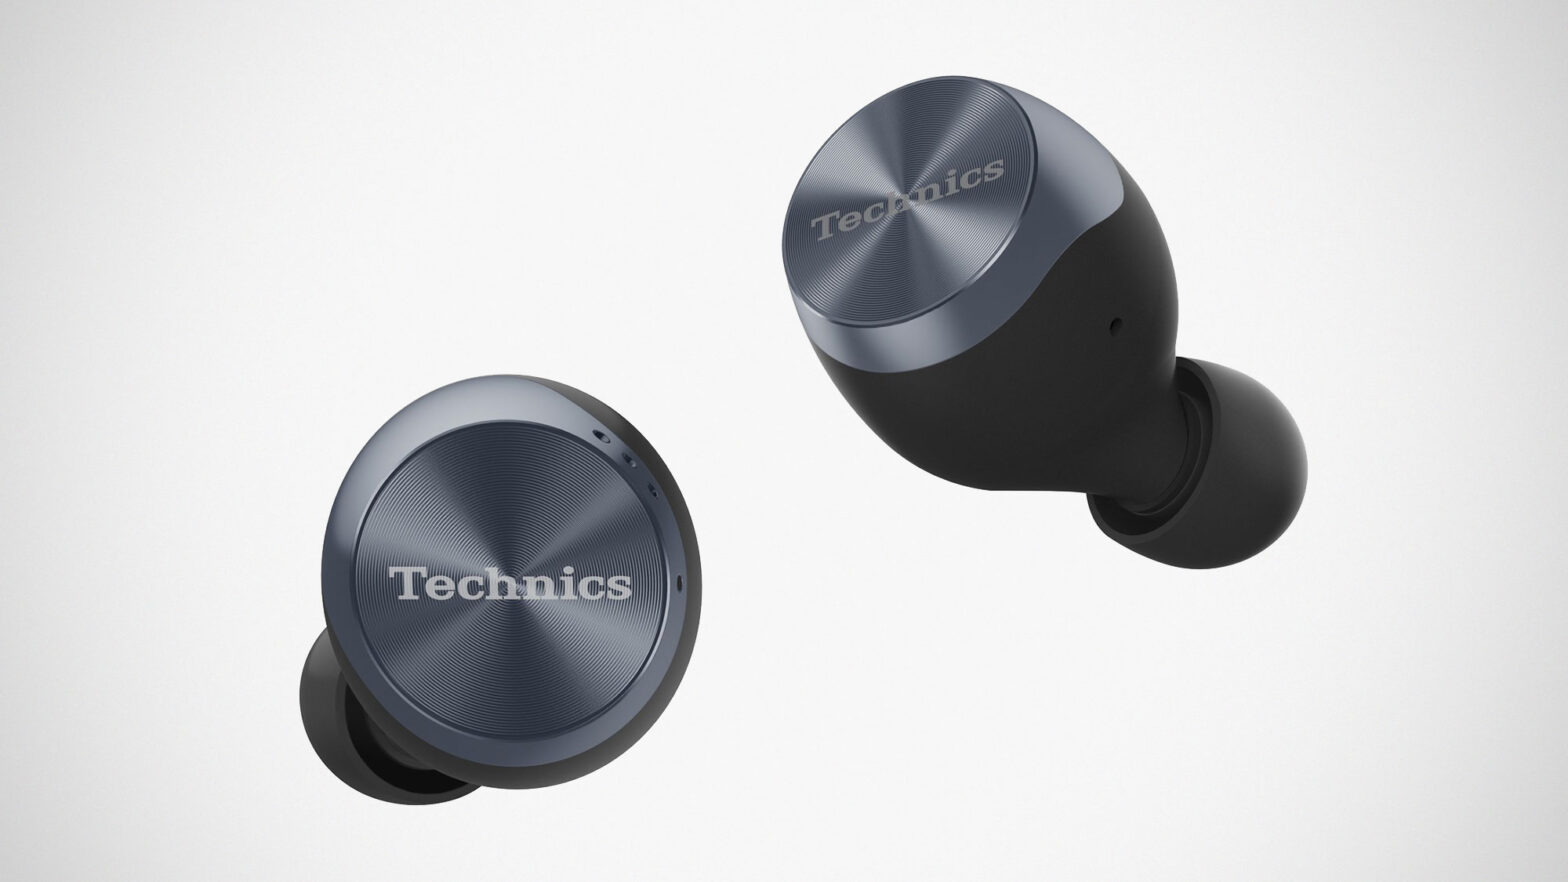 Technics EAH-AZ70W True Wireless Earbuds